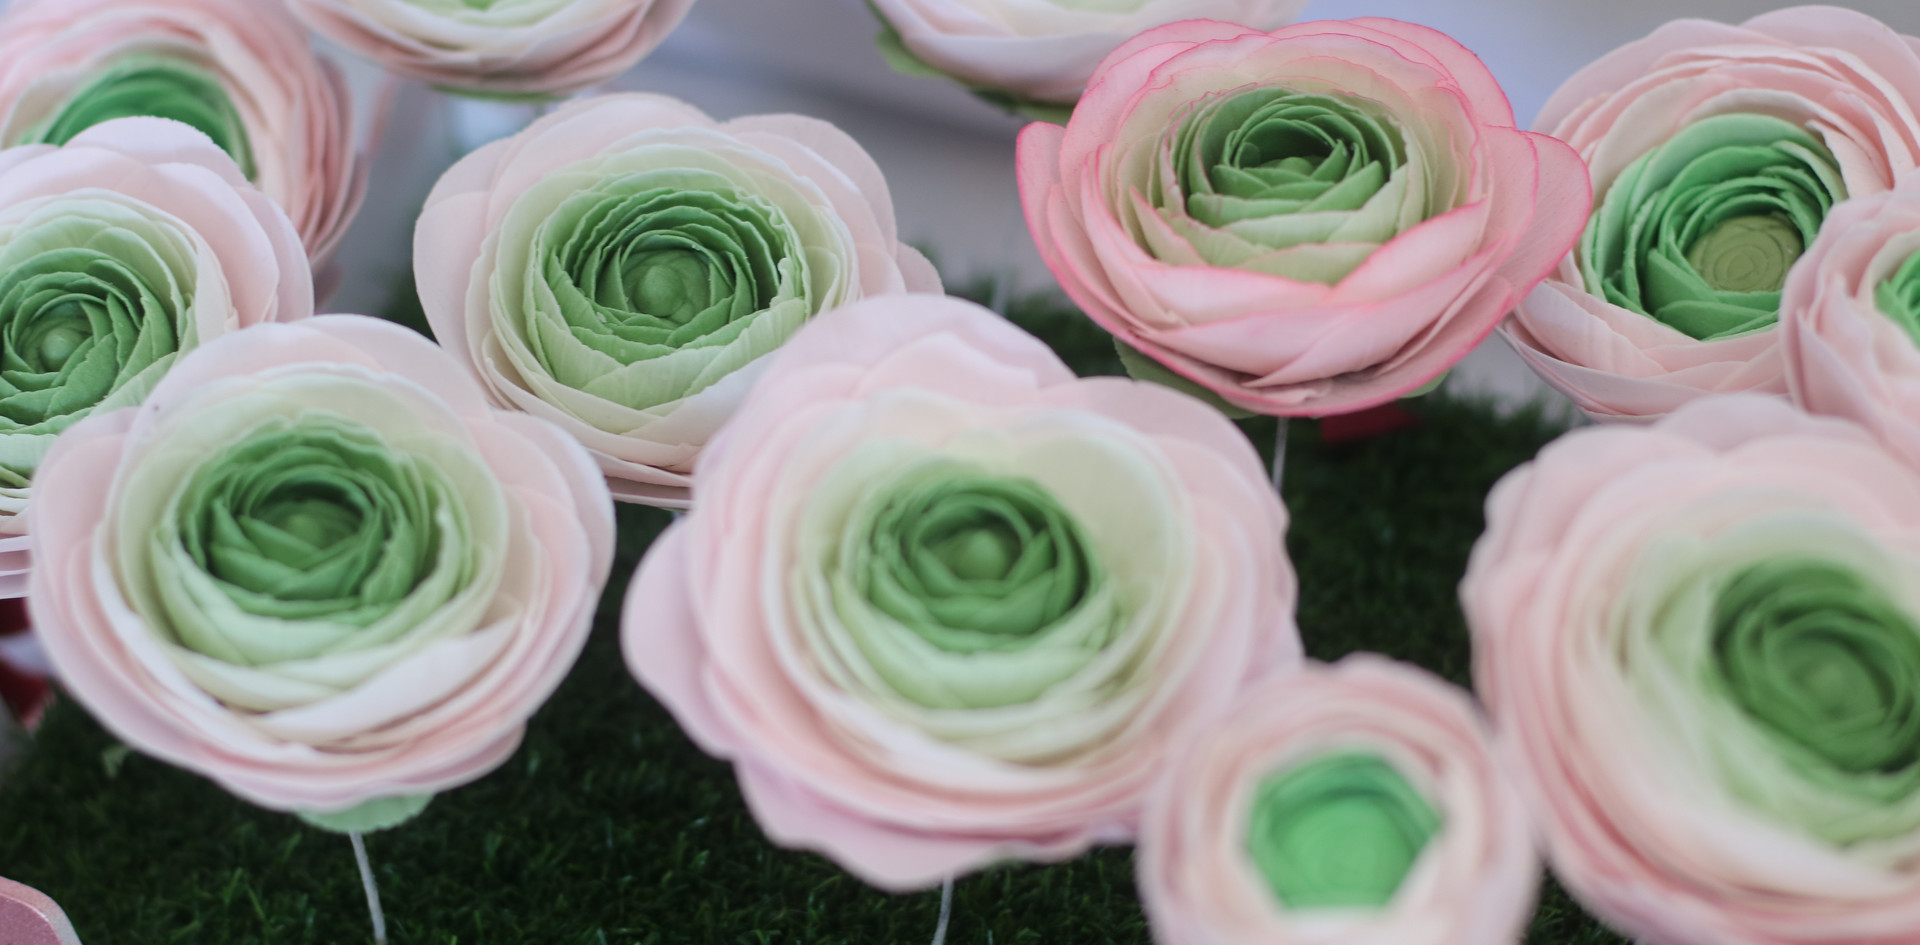 Ranunculus sugar flowers